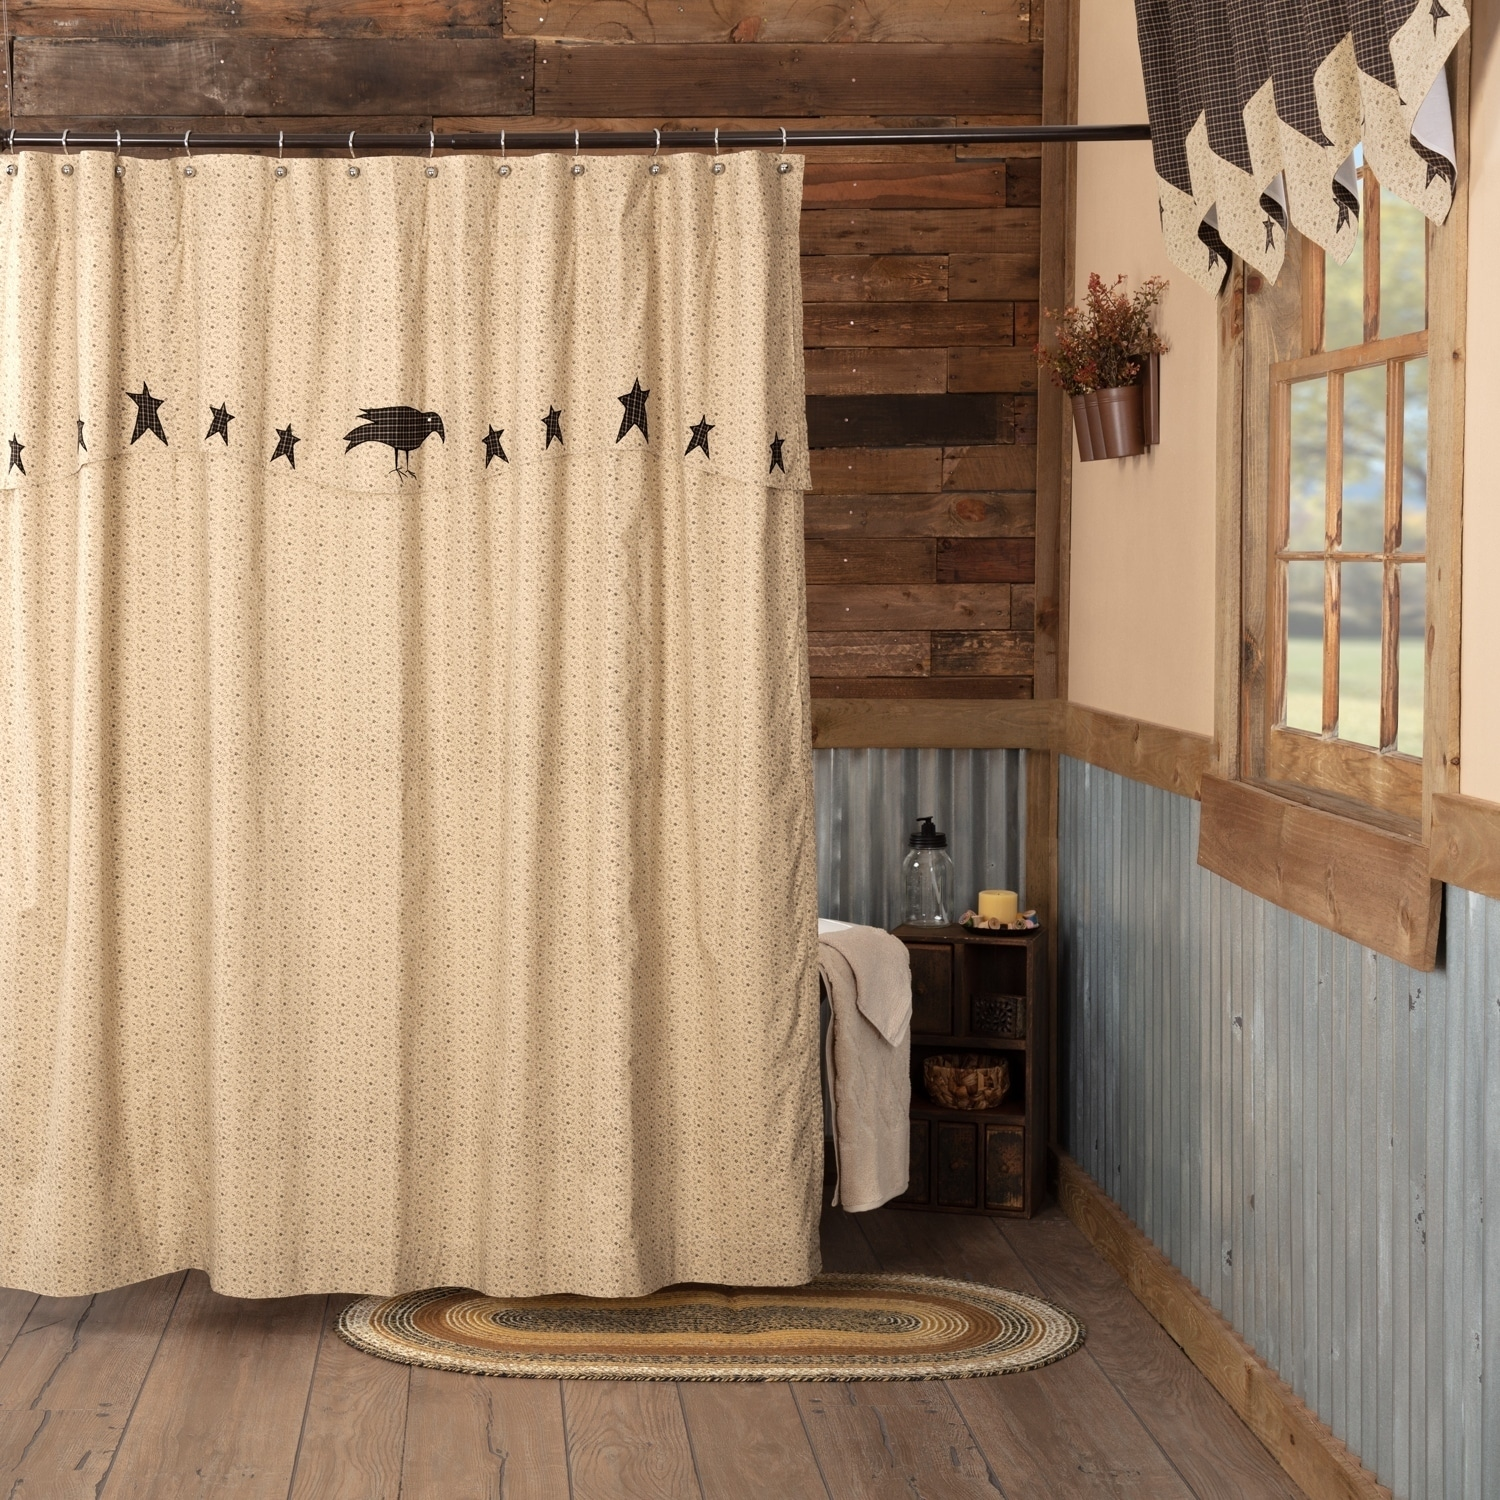 Kettle Grove Primitive Star Country Crow Black /& Tan Patchwork Shower Curtain